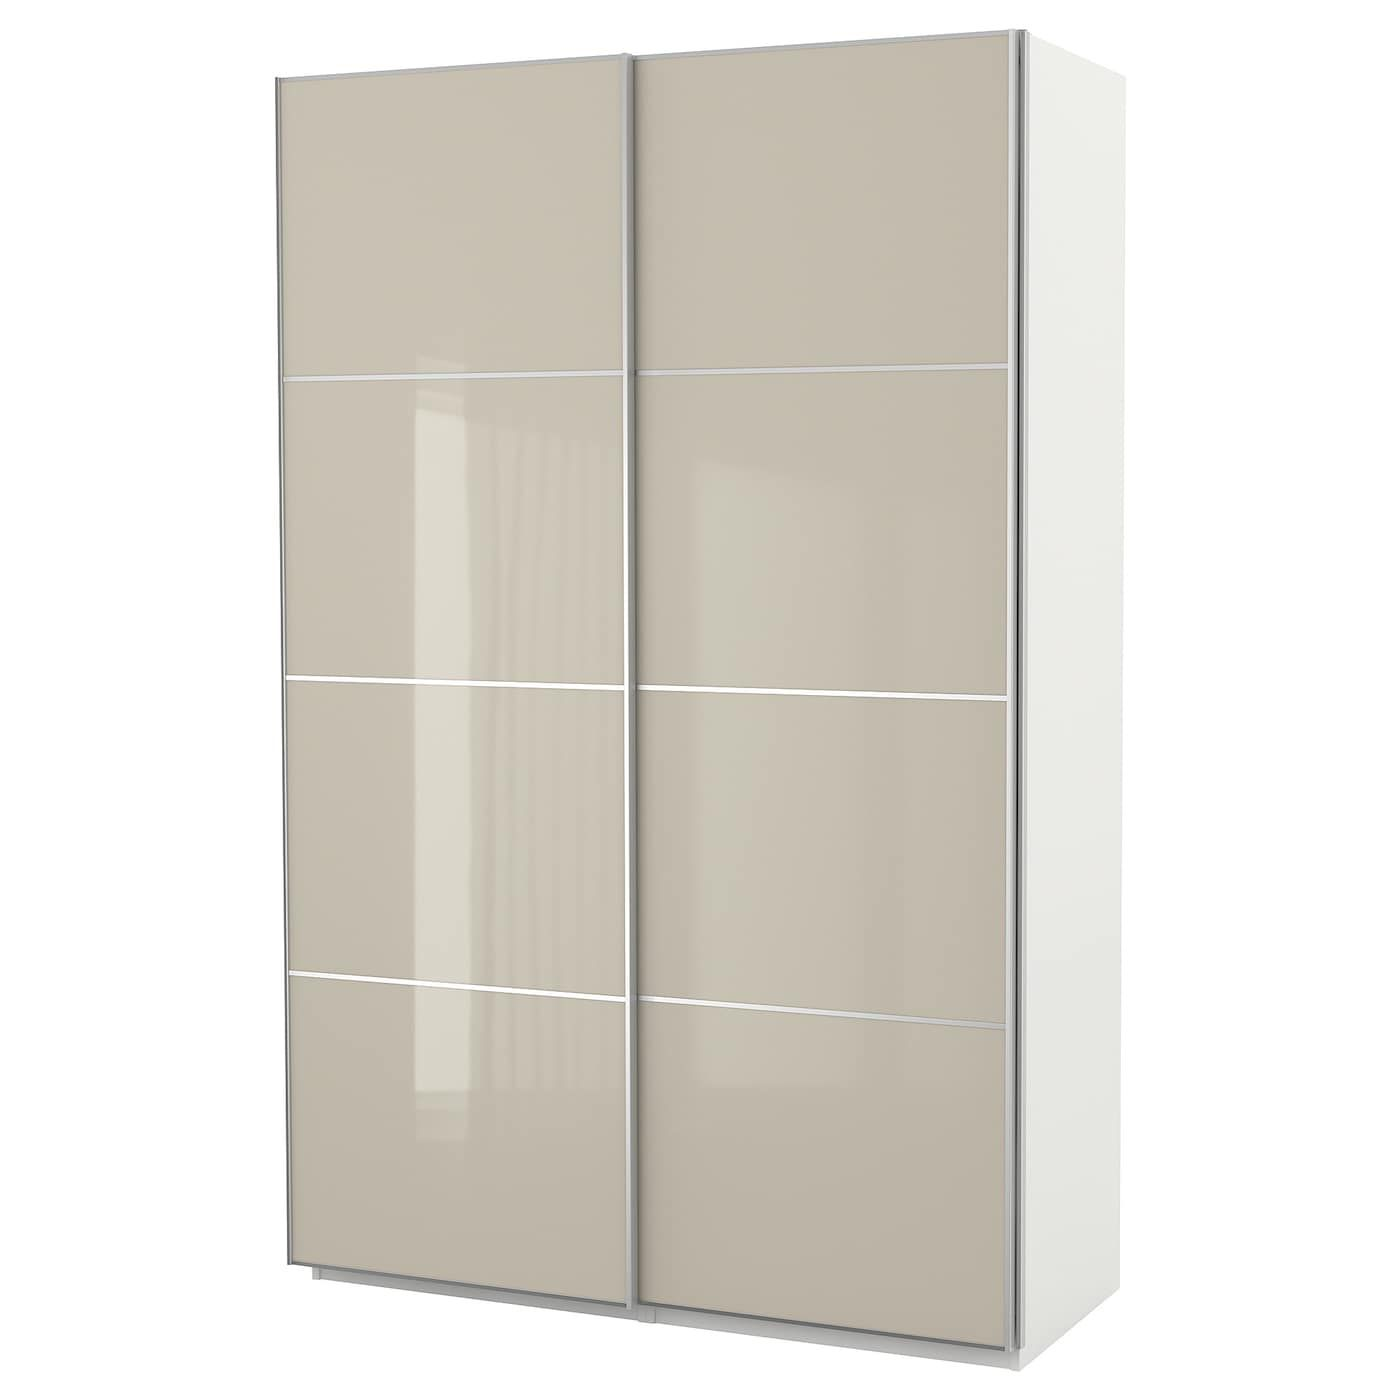 Ikea Pax Wardrobe White Hokksund High Gloss Light Beige